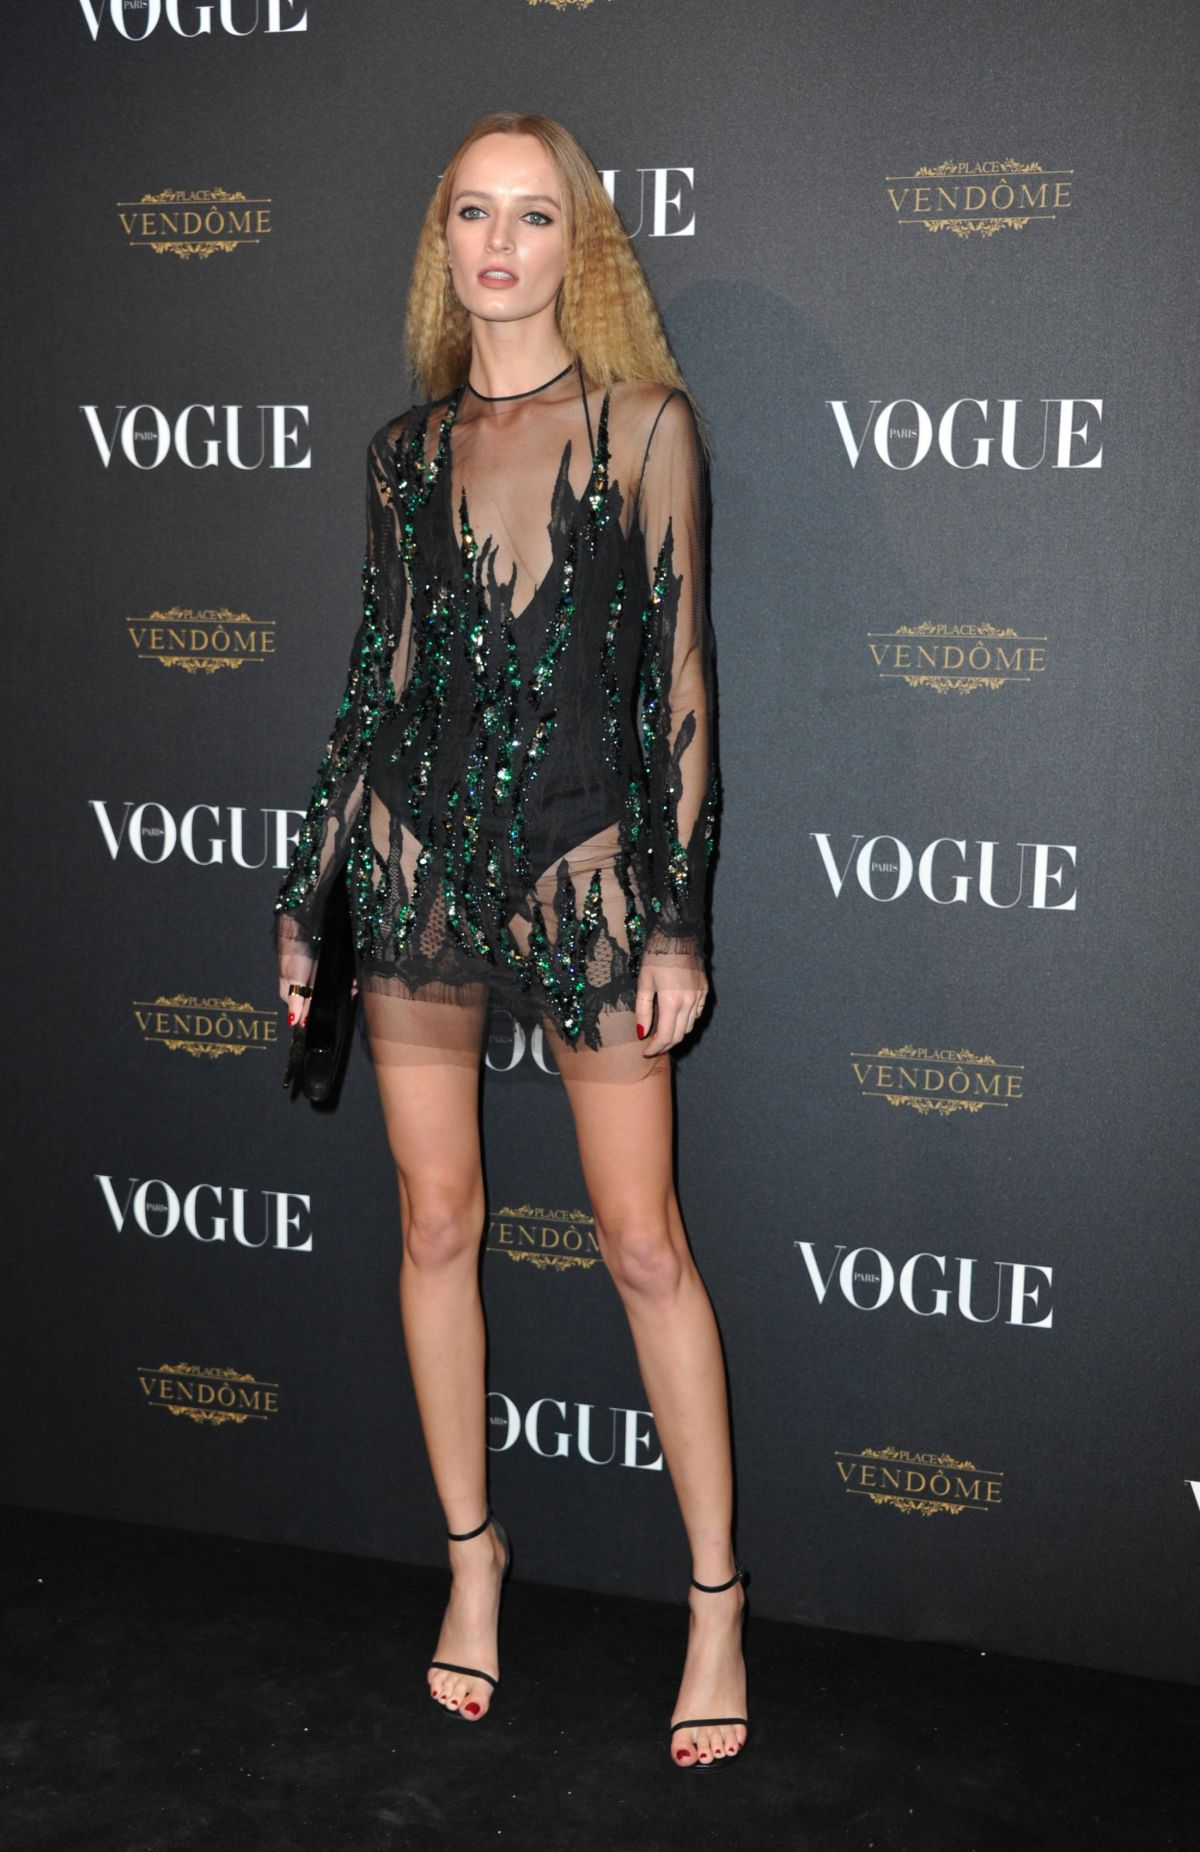 DARIA STROKOUS at Vogue's 95th Anniversary Party in Paris 10/03/2015